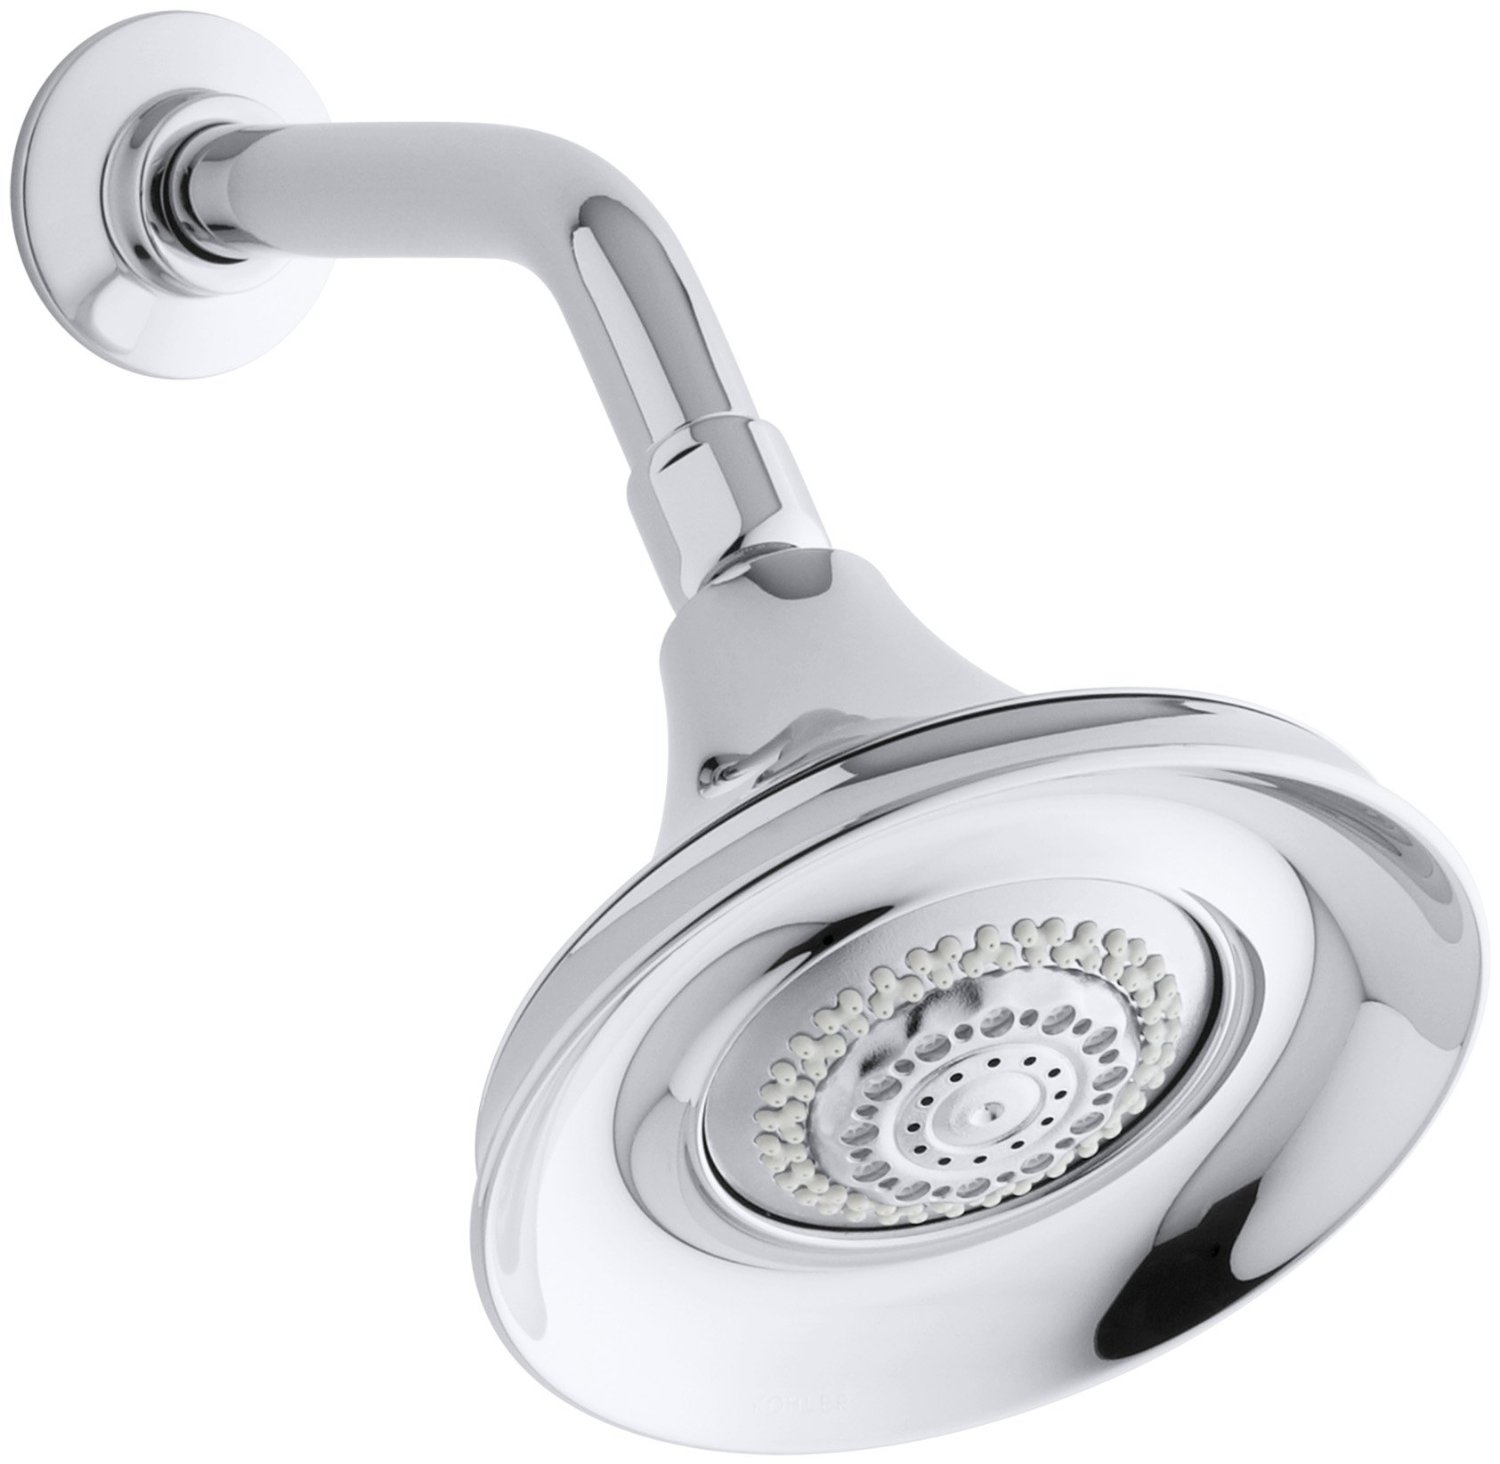 Top 10 Best Kohler Shower Heads - An Unbiased Review [2018]